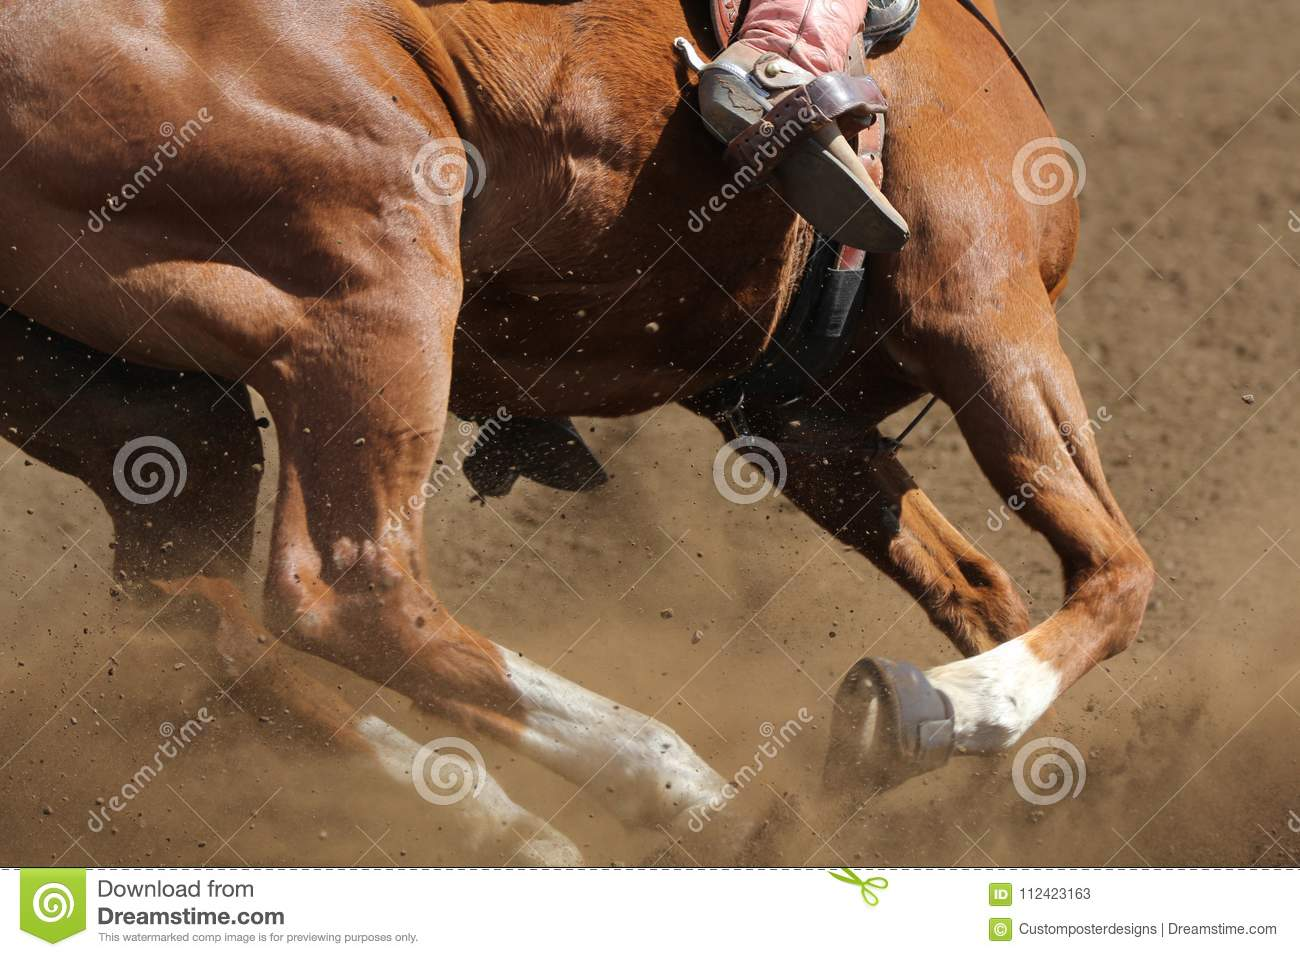 Download A barrel racing horse. stock image. Image of competition - 112423163